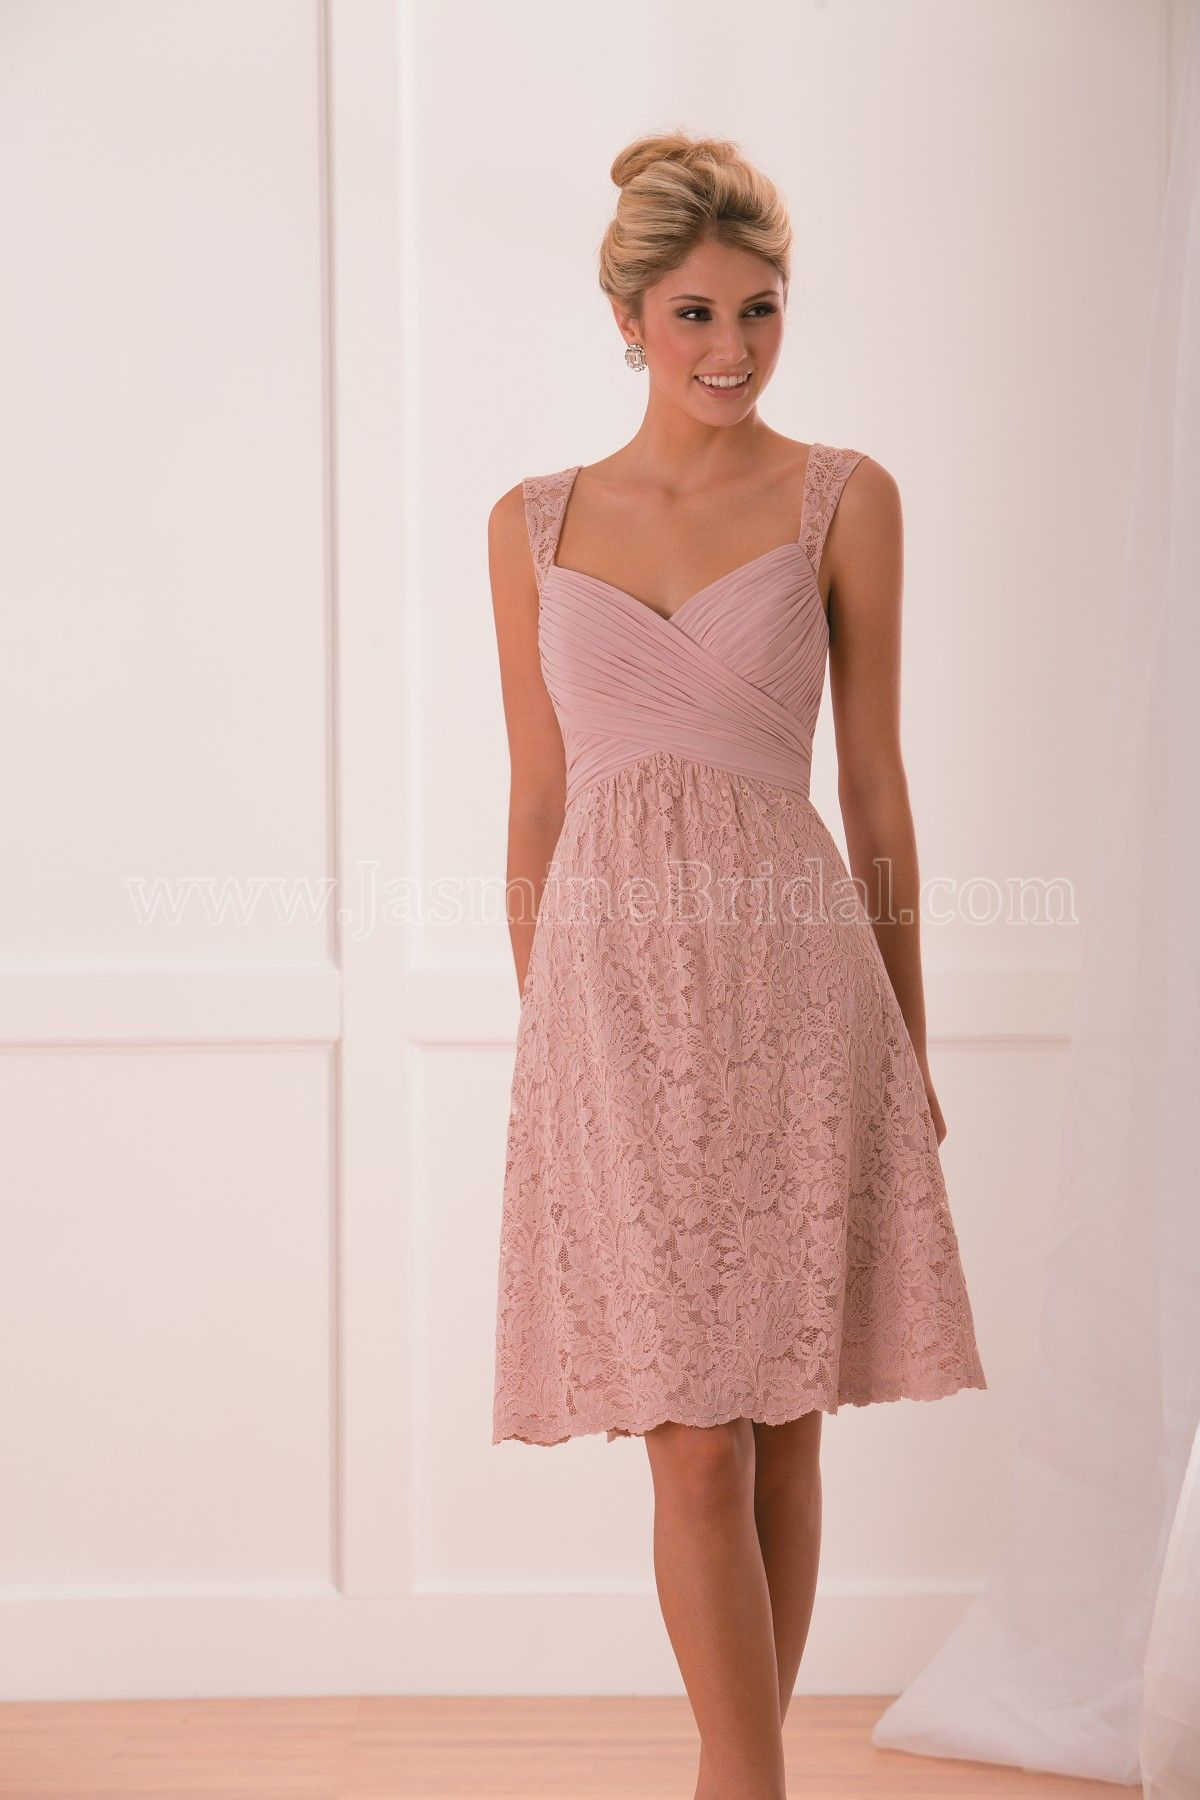 Jasmine bridal bridesmaid dress b2 style b173010 in pink chic and jasmine bridal bridesmaid dress b2 style b173010 in pink chic and stylish this is ombrellifo Images